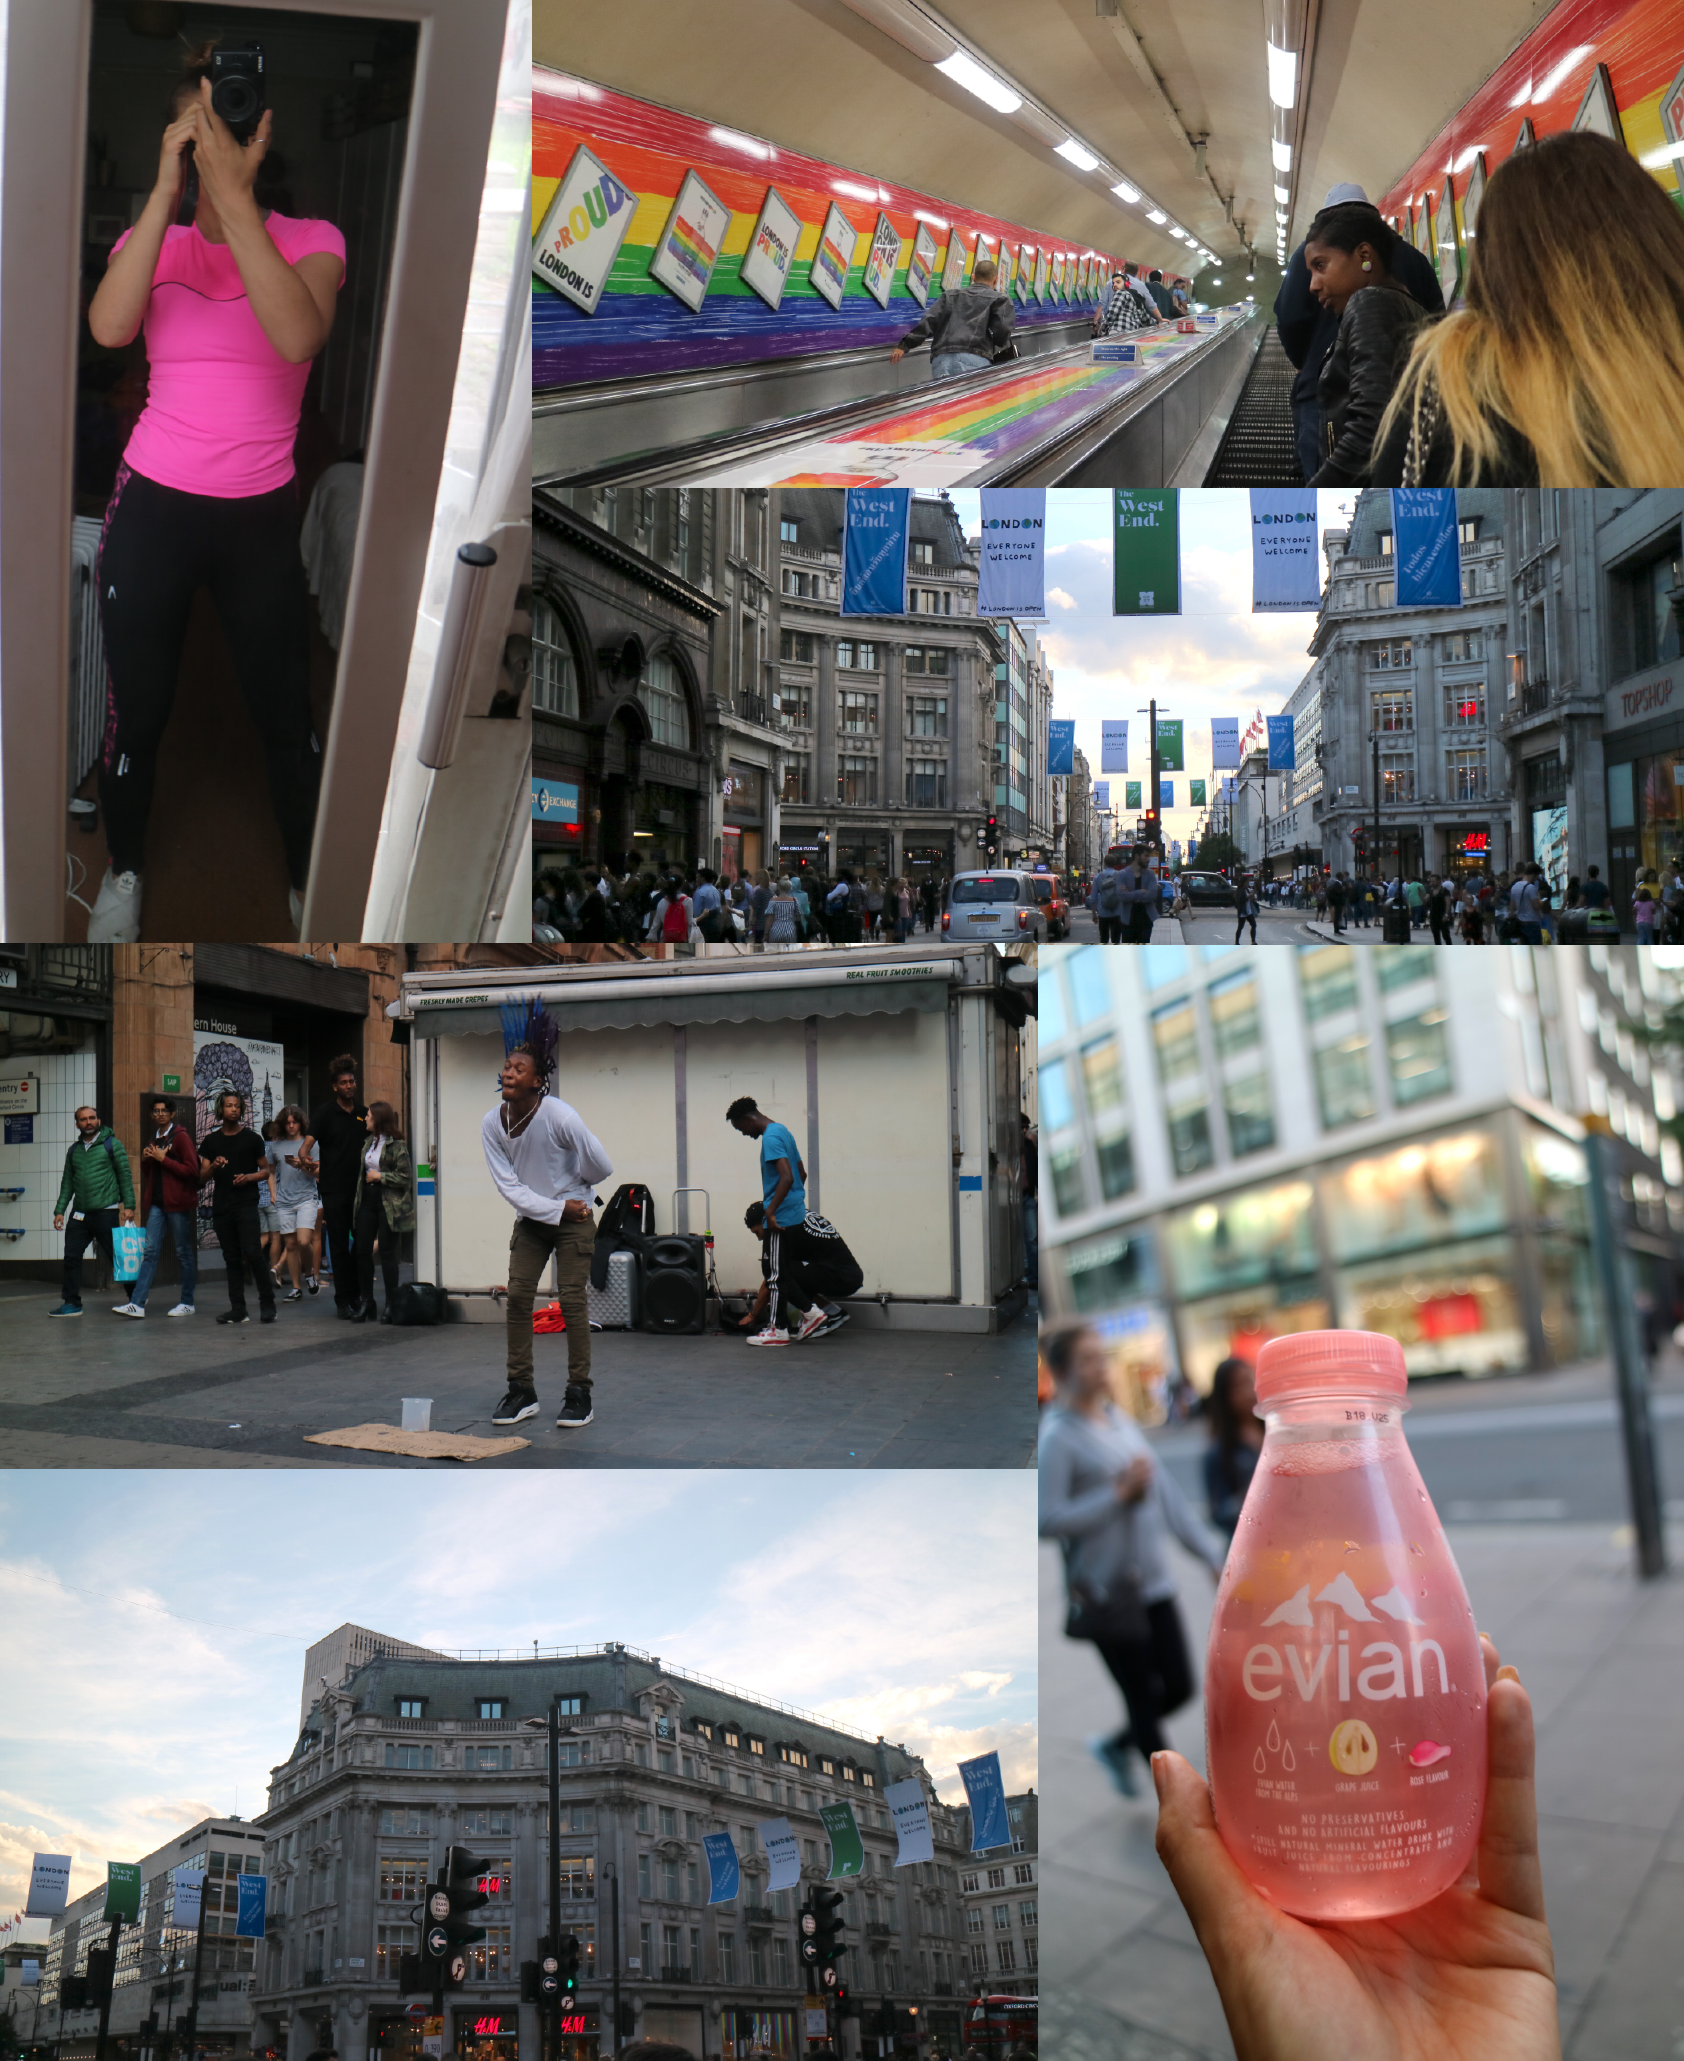 I love the Pride advertising from absolute Vodka. And the Evian water drop thing taster really good but I recommend the real water instead, haha.